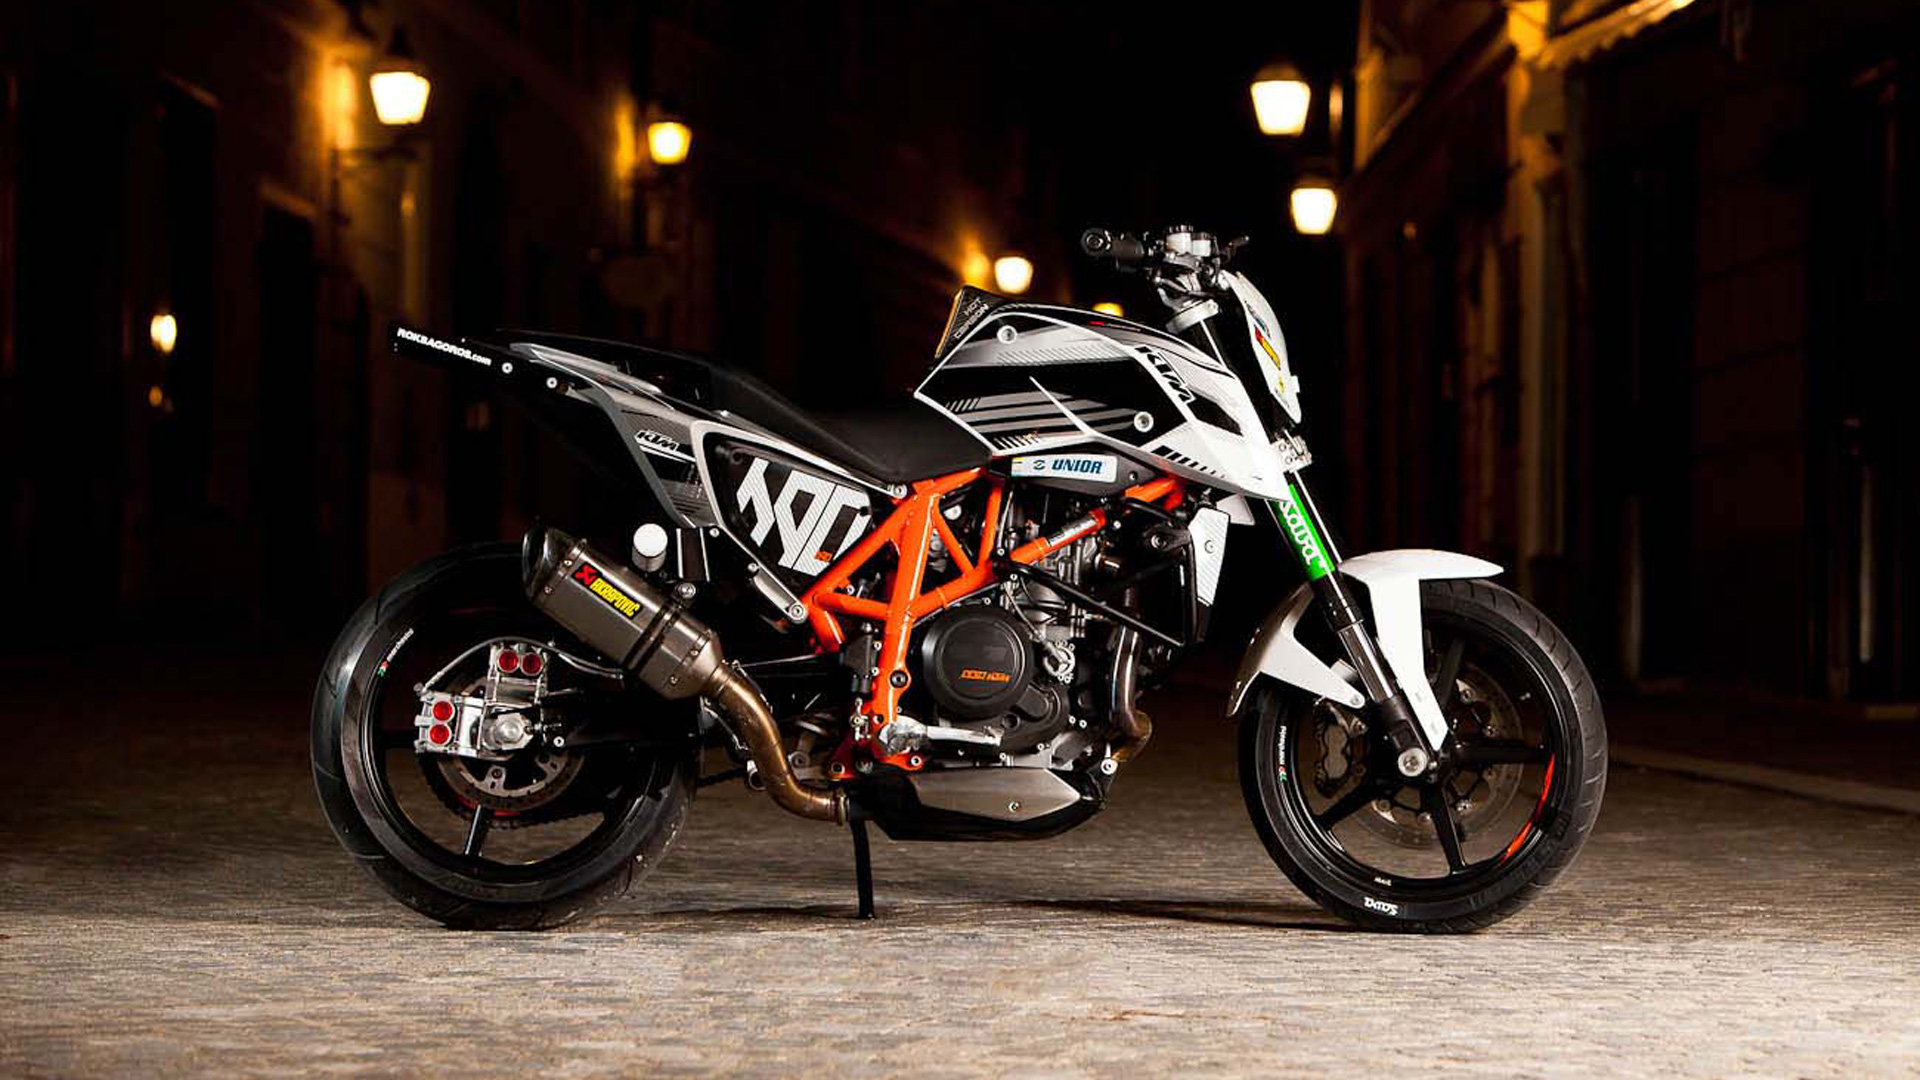 Ktm Duke 125 Hd 1920x1080 Download Hd Wallpaper Wallpapertip